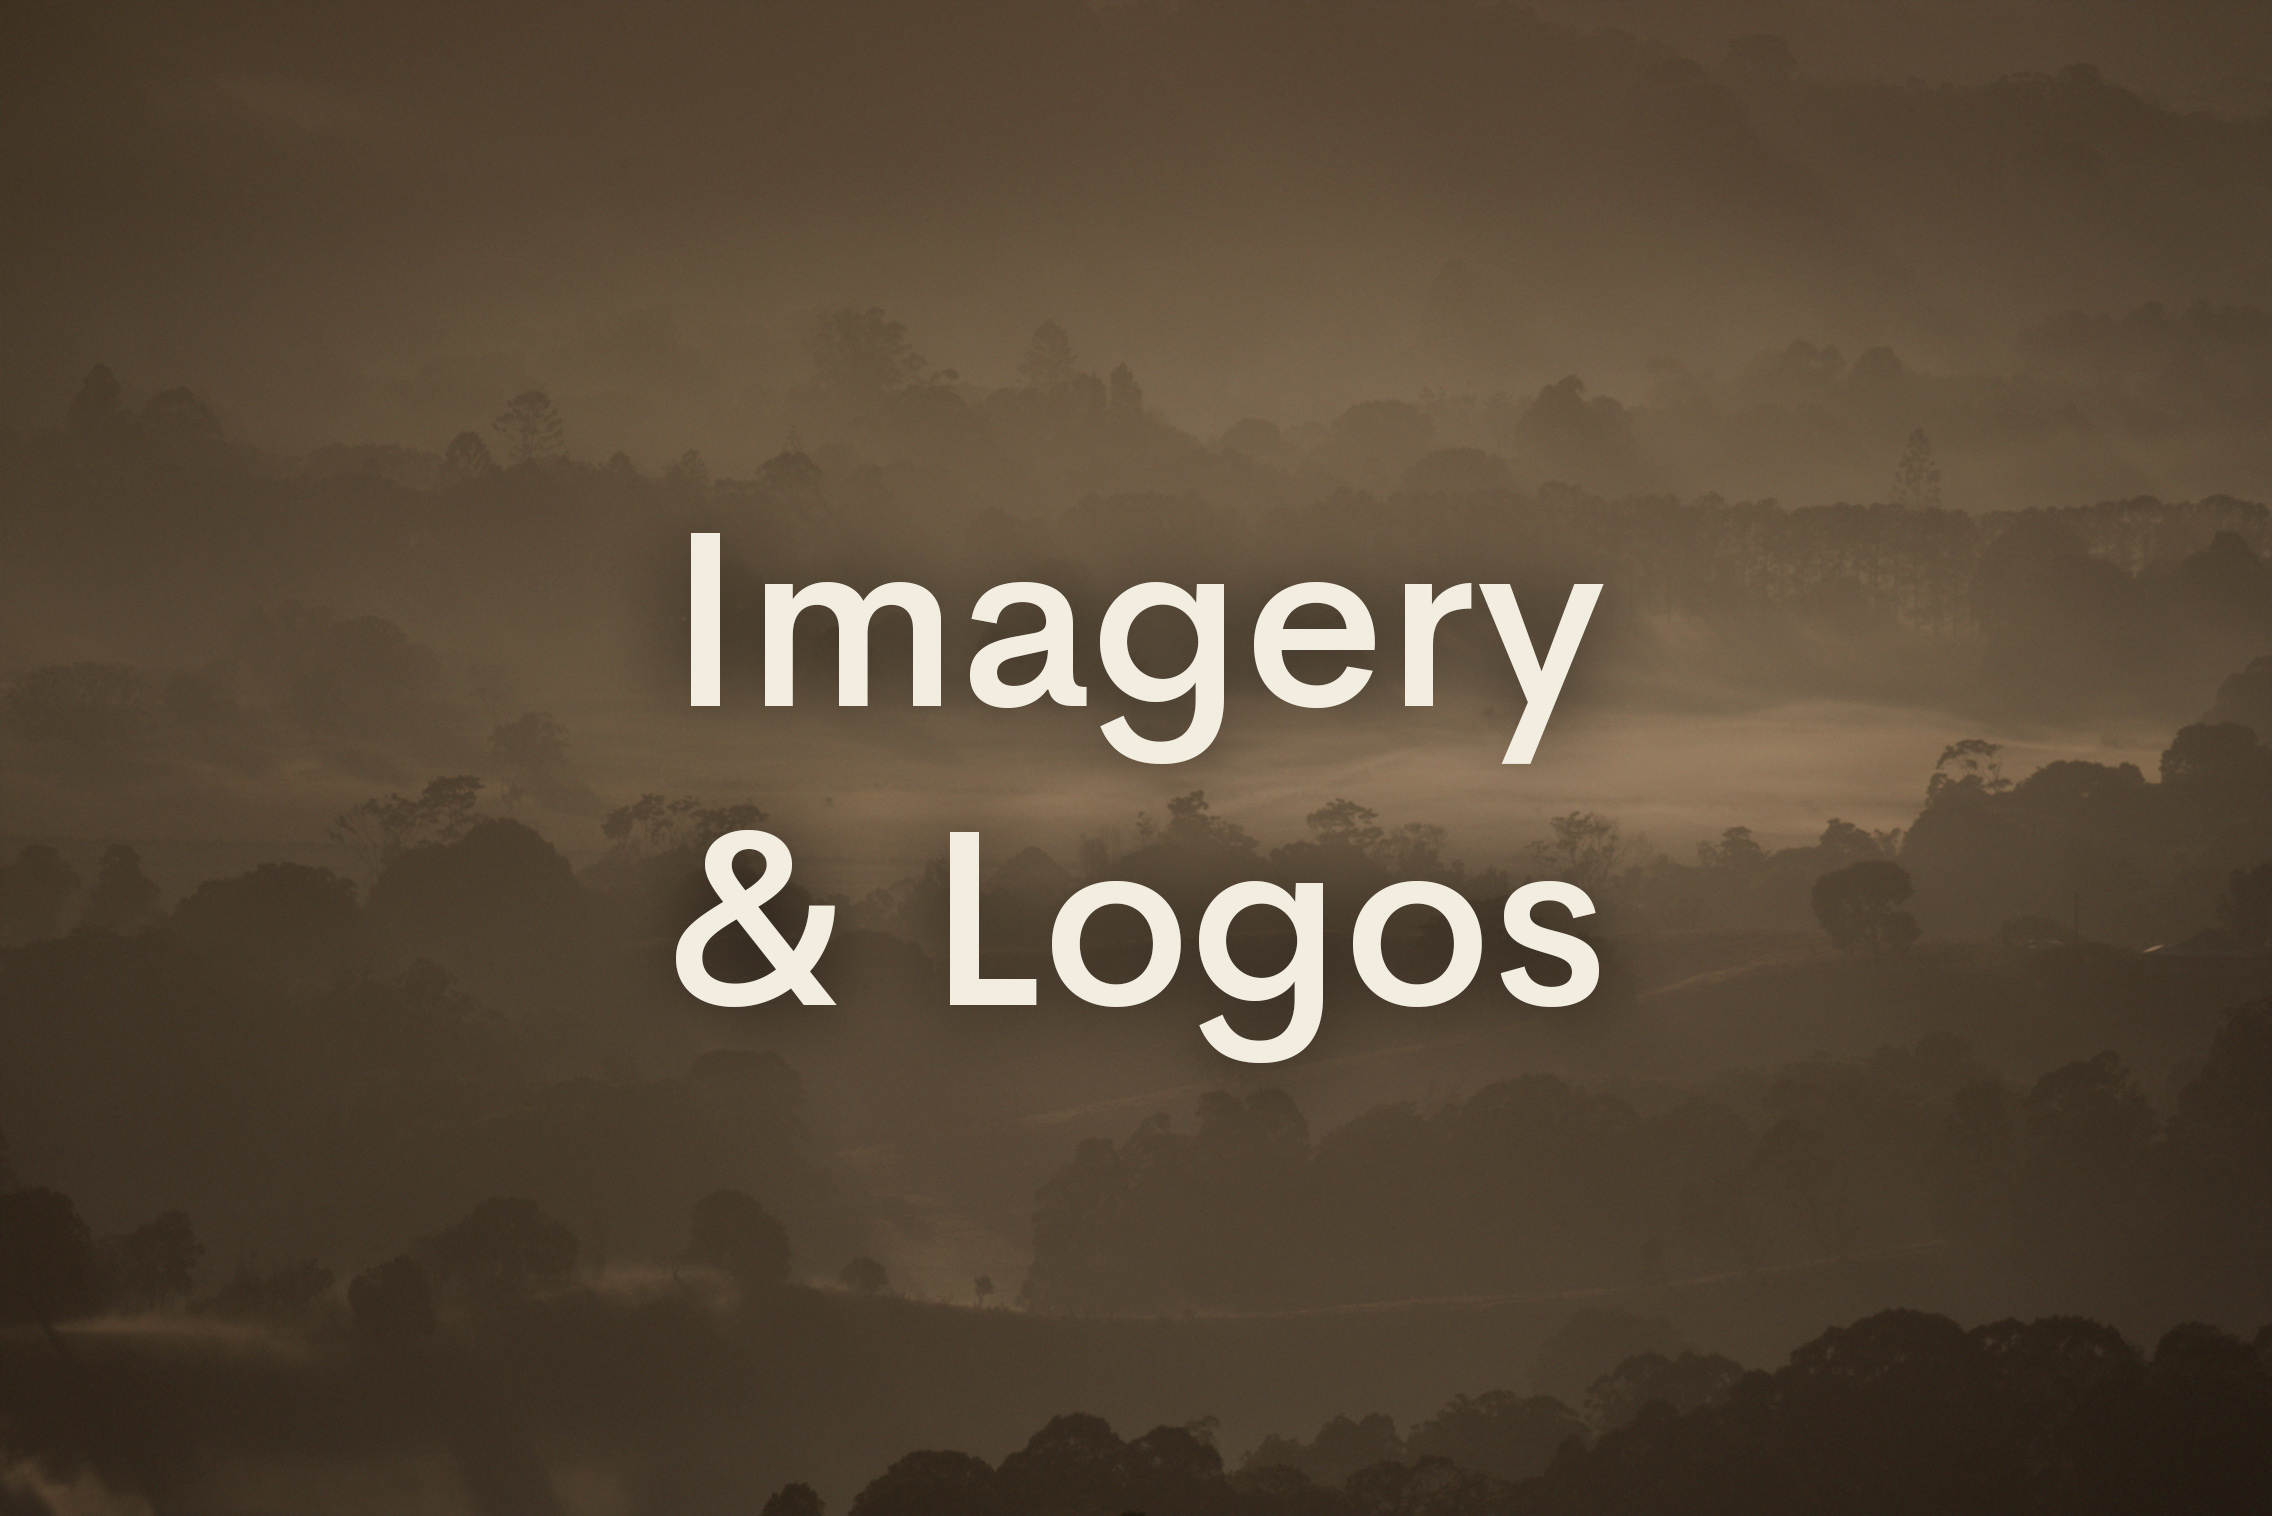 Imagery-and-logos